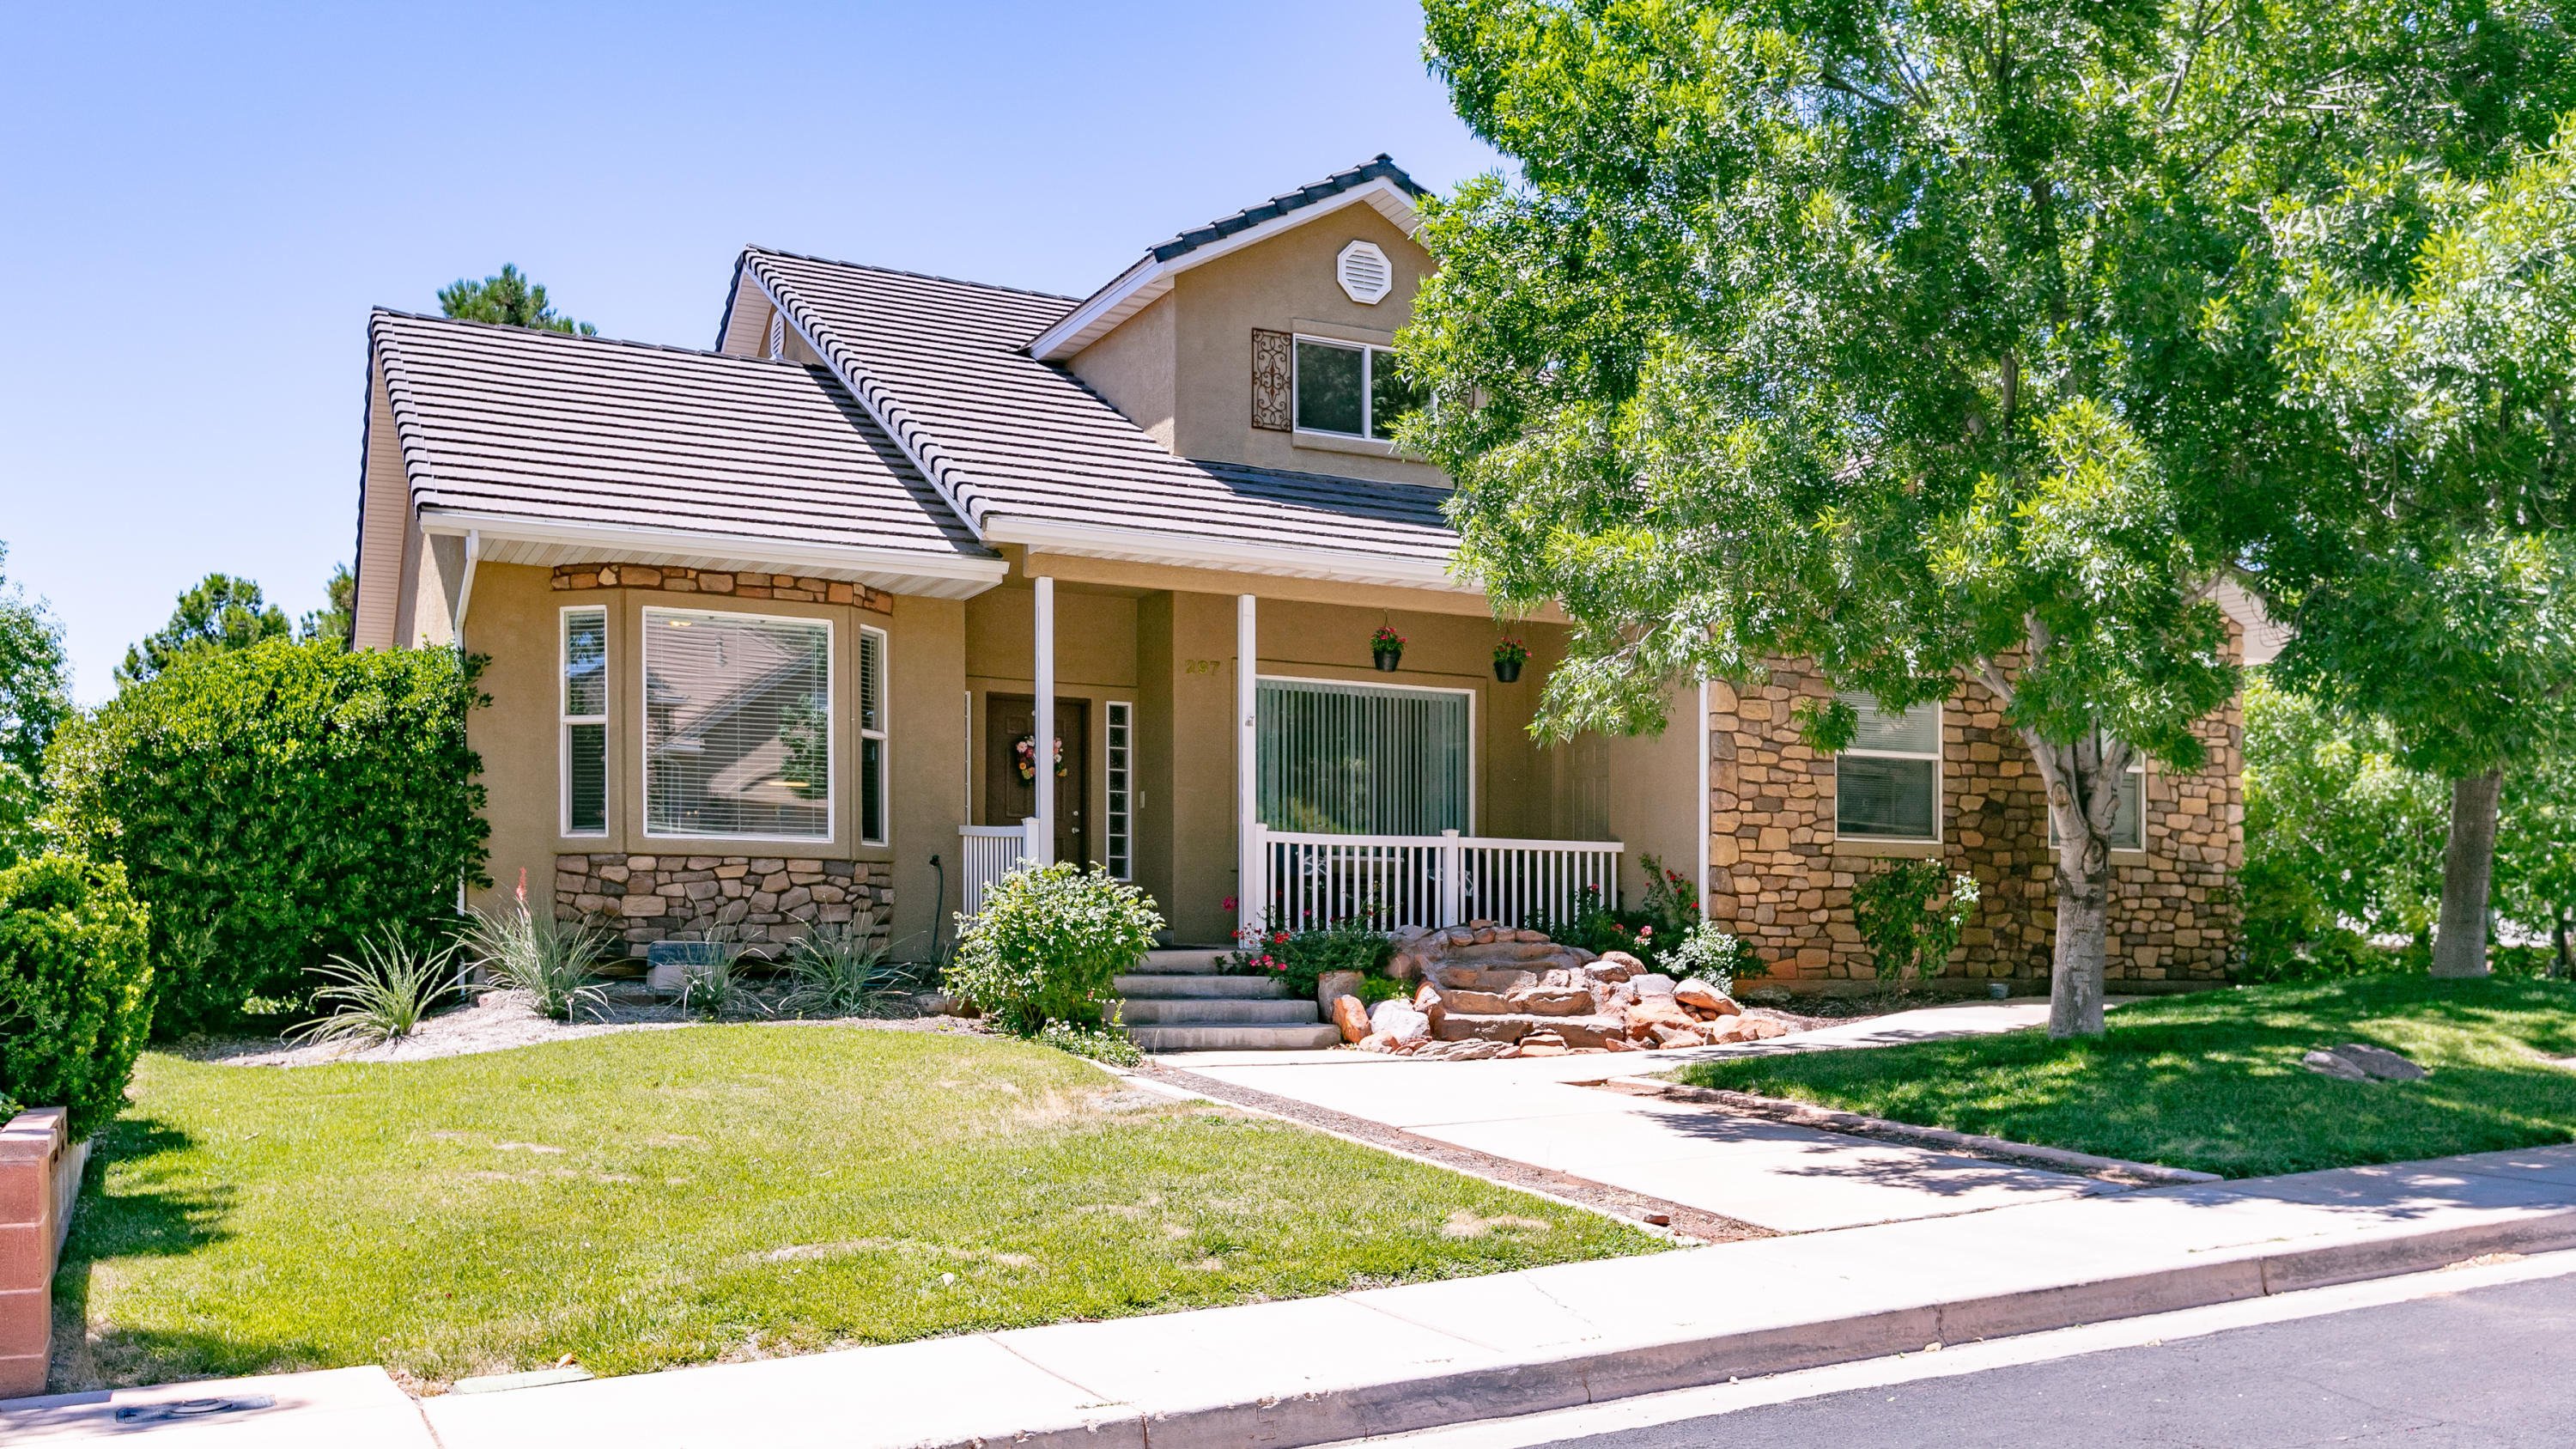 297 N Stone Mountain Dr, St George Ut 84770